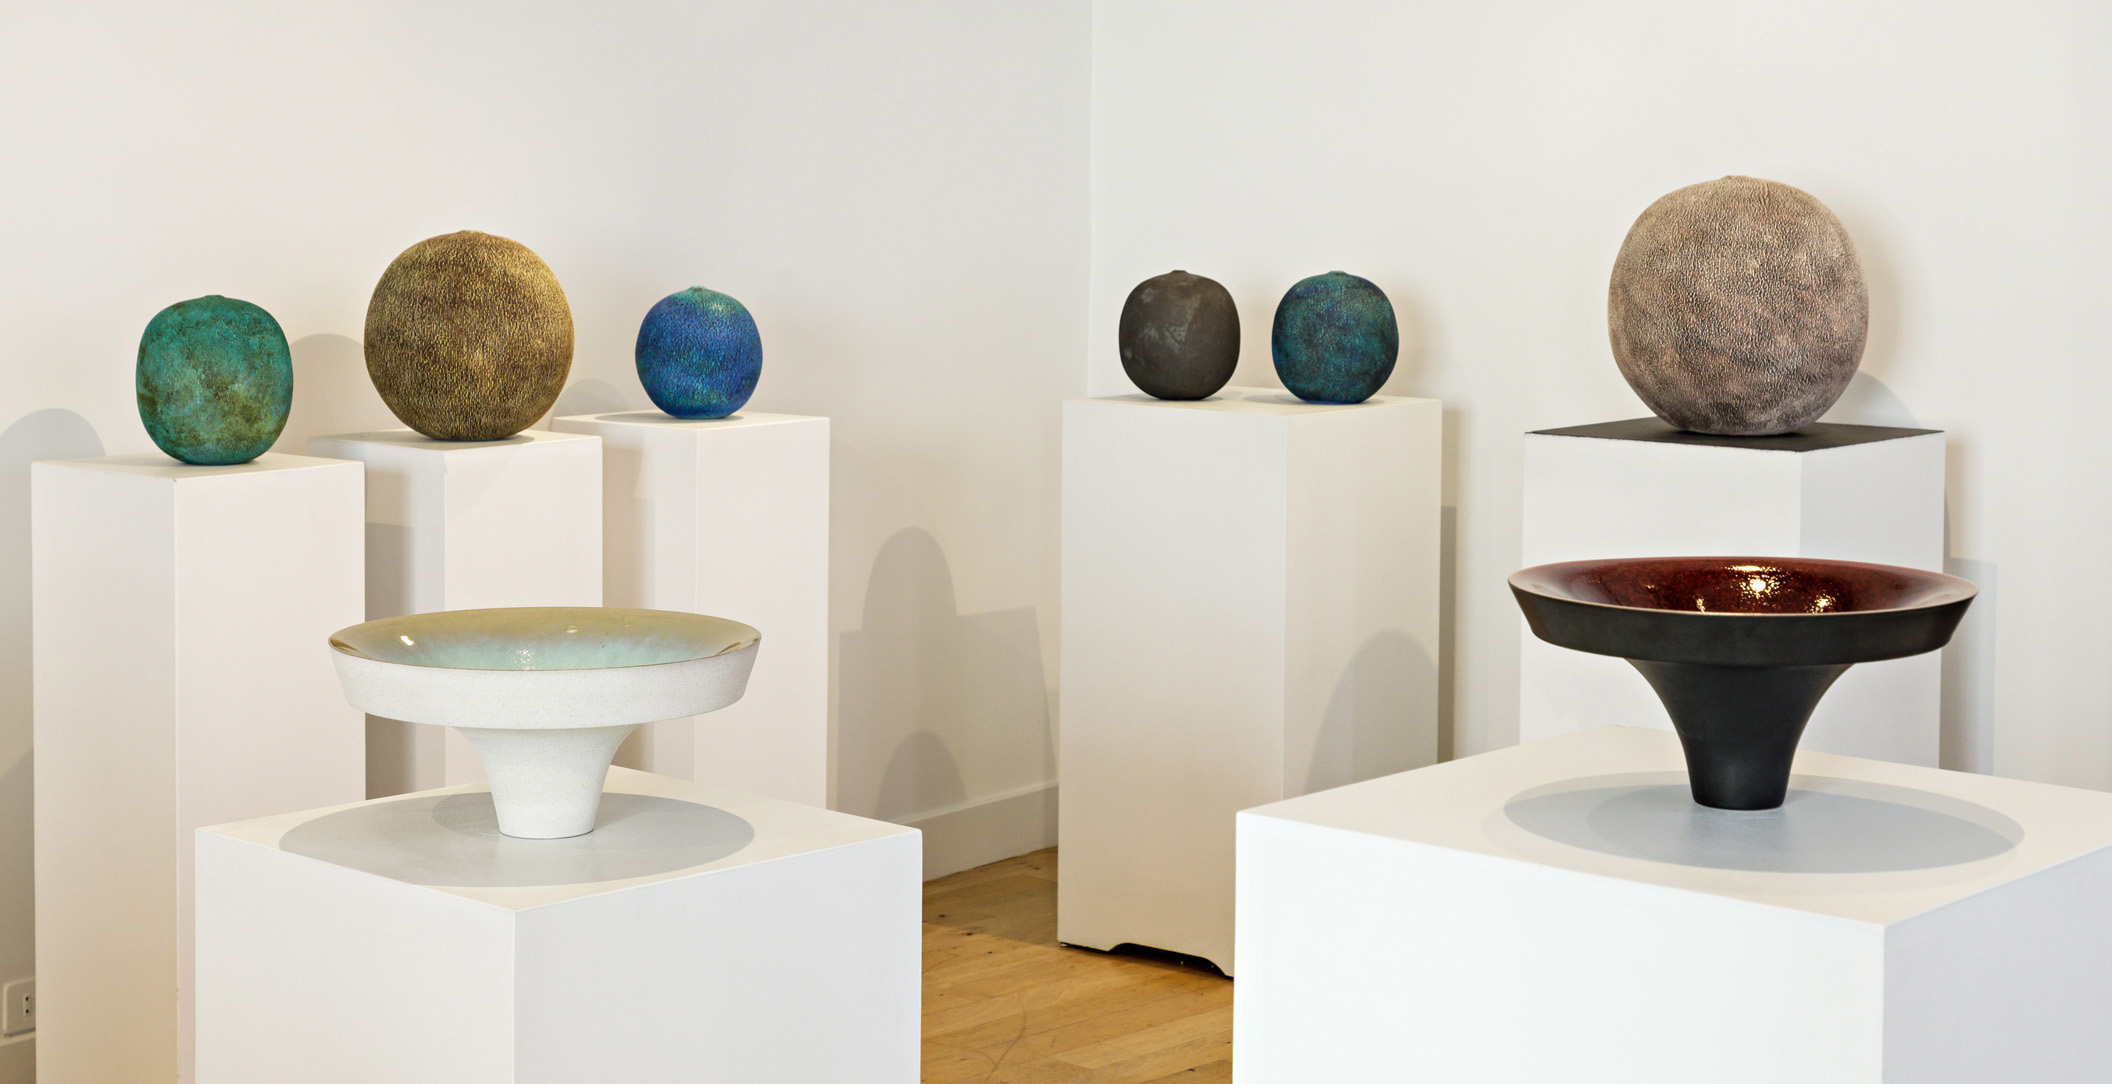 Galerie de l'Ancienne Poste - ceramic exhibitions - contemporary ceramics - art gallery in France - French art gallery in Burgundyy